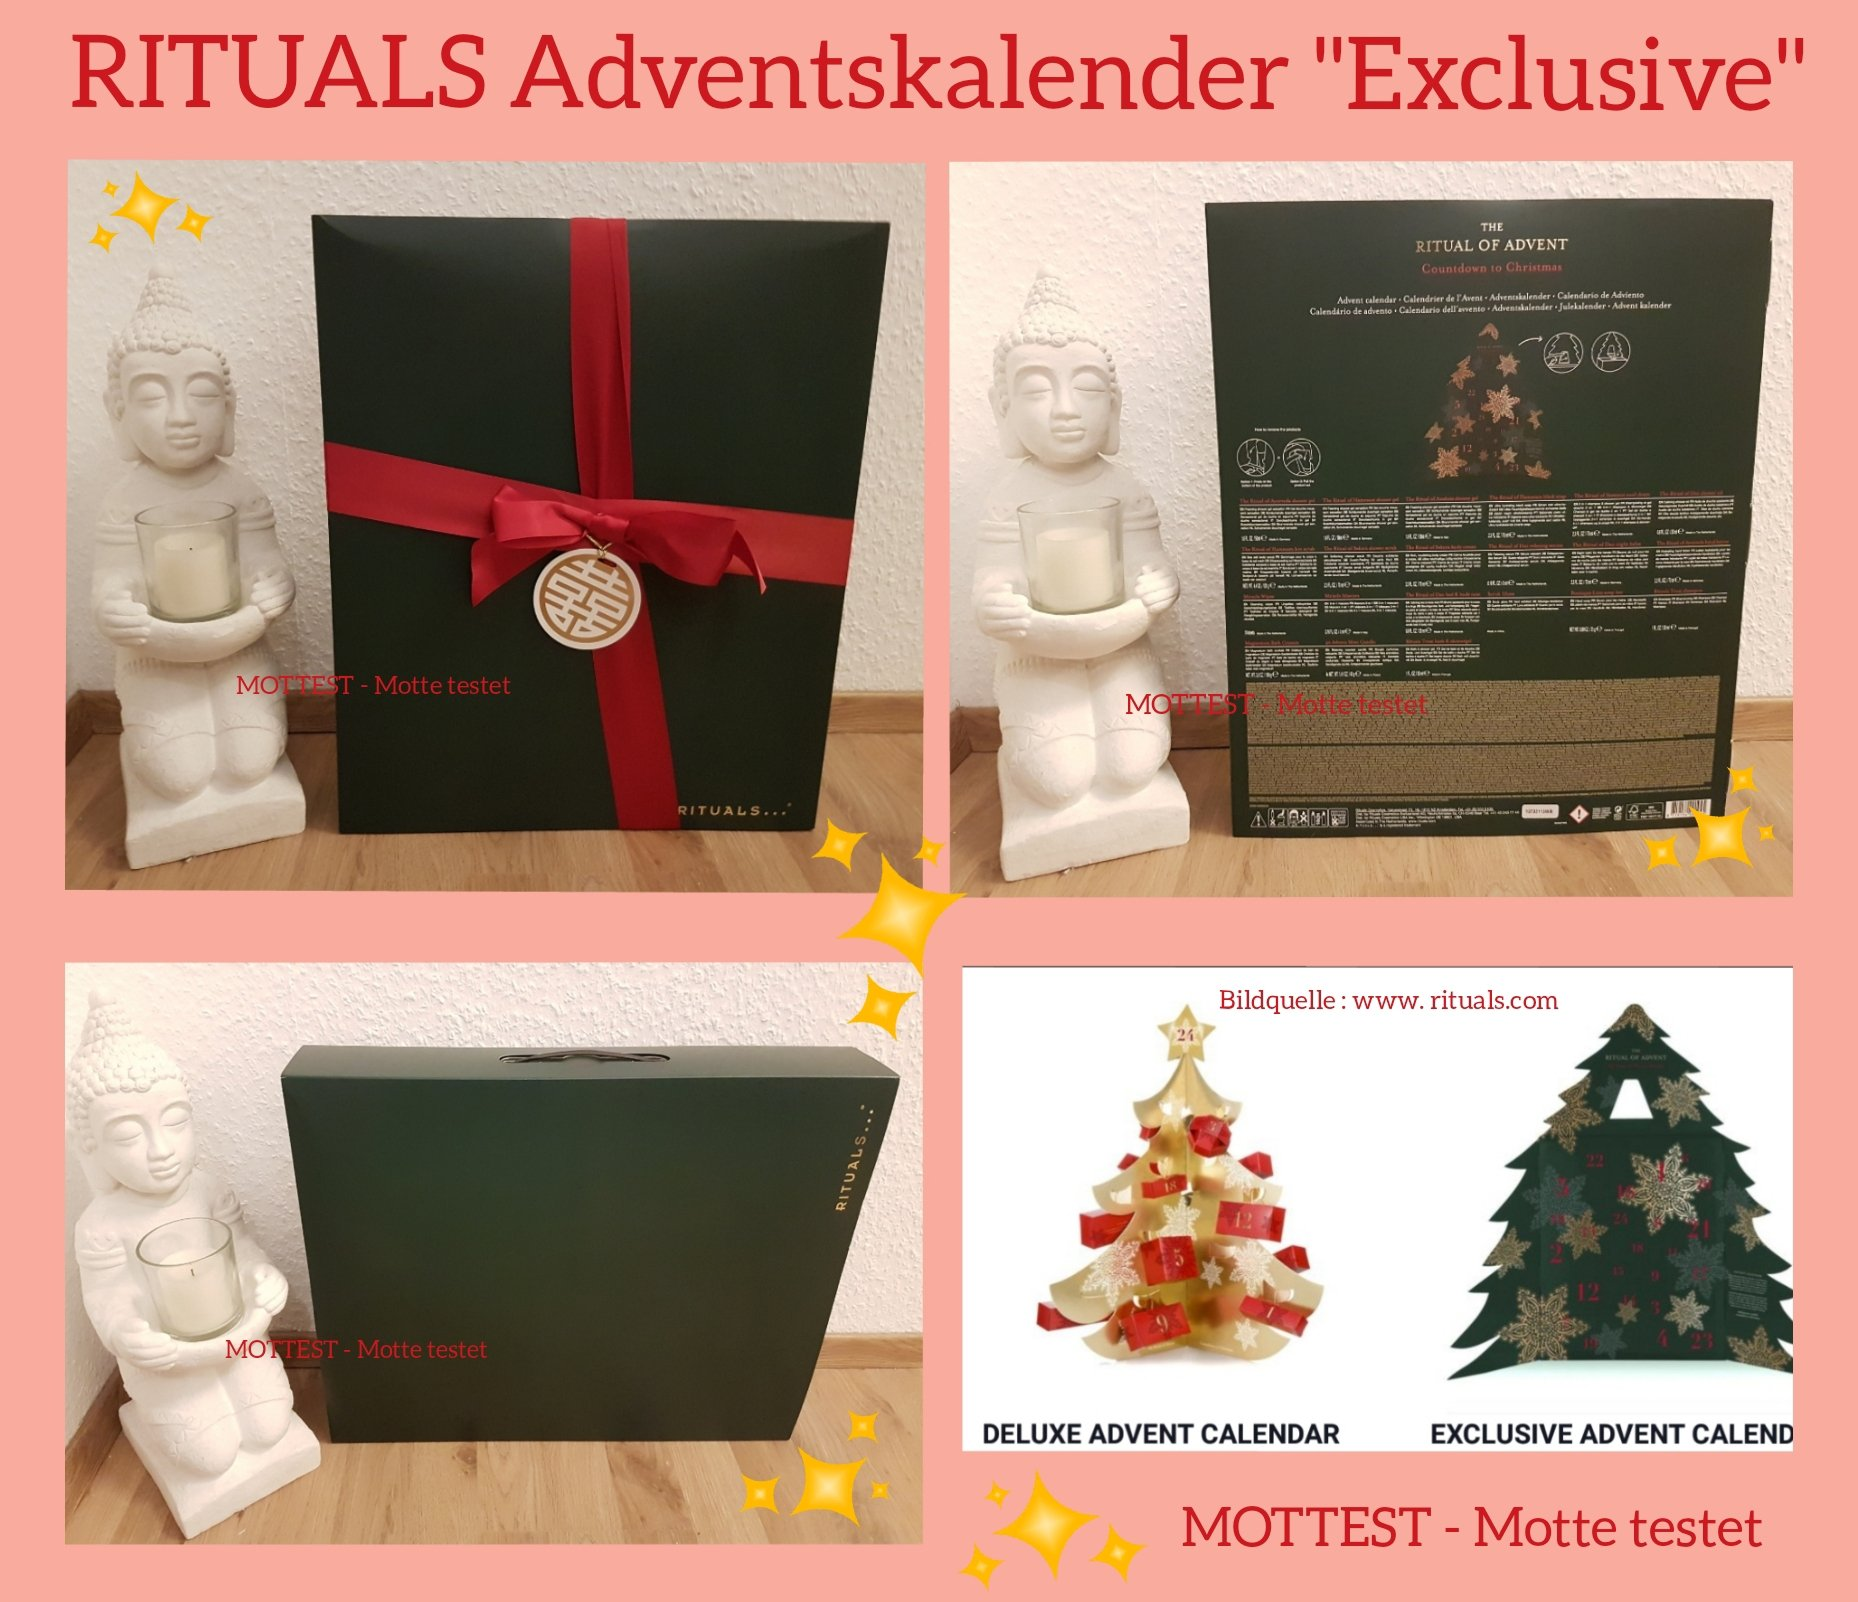 rituals exclusive adventskalender 2017 werbung. Black Bedroom Furniture Sets. Home Design Ideas